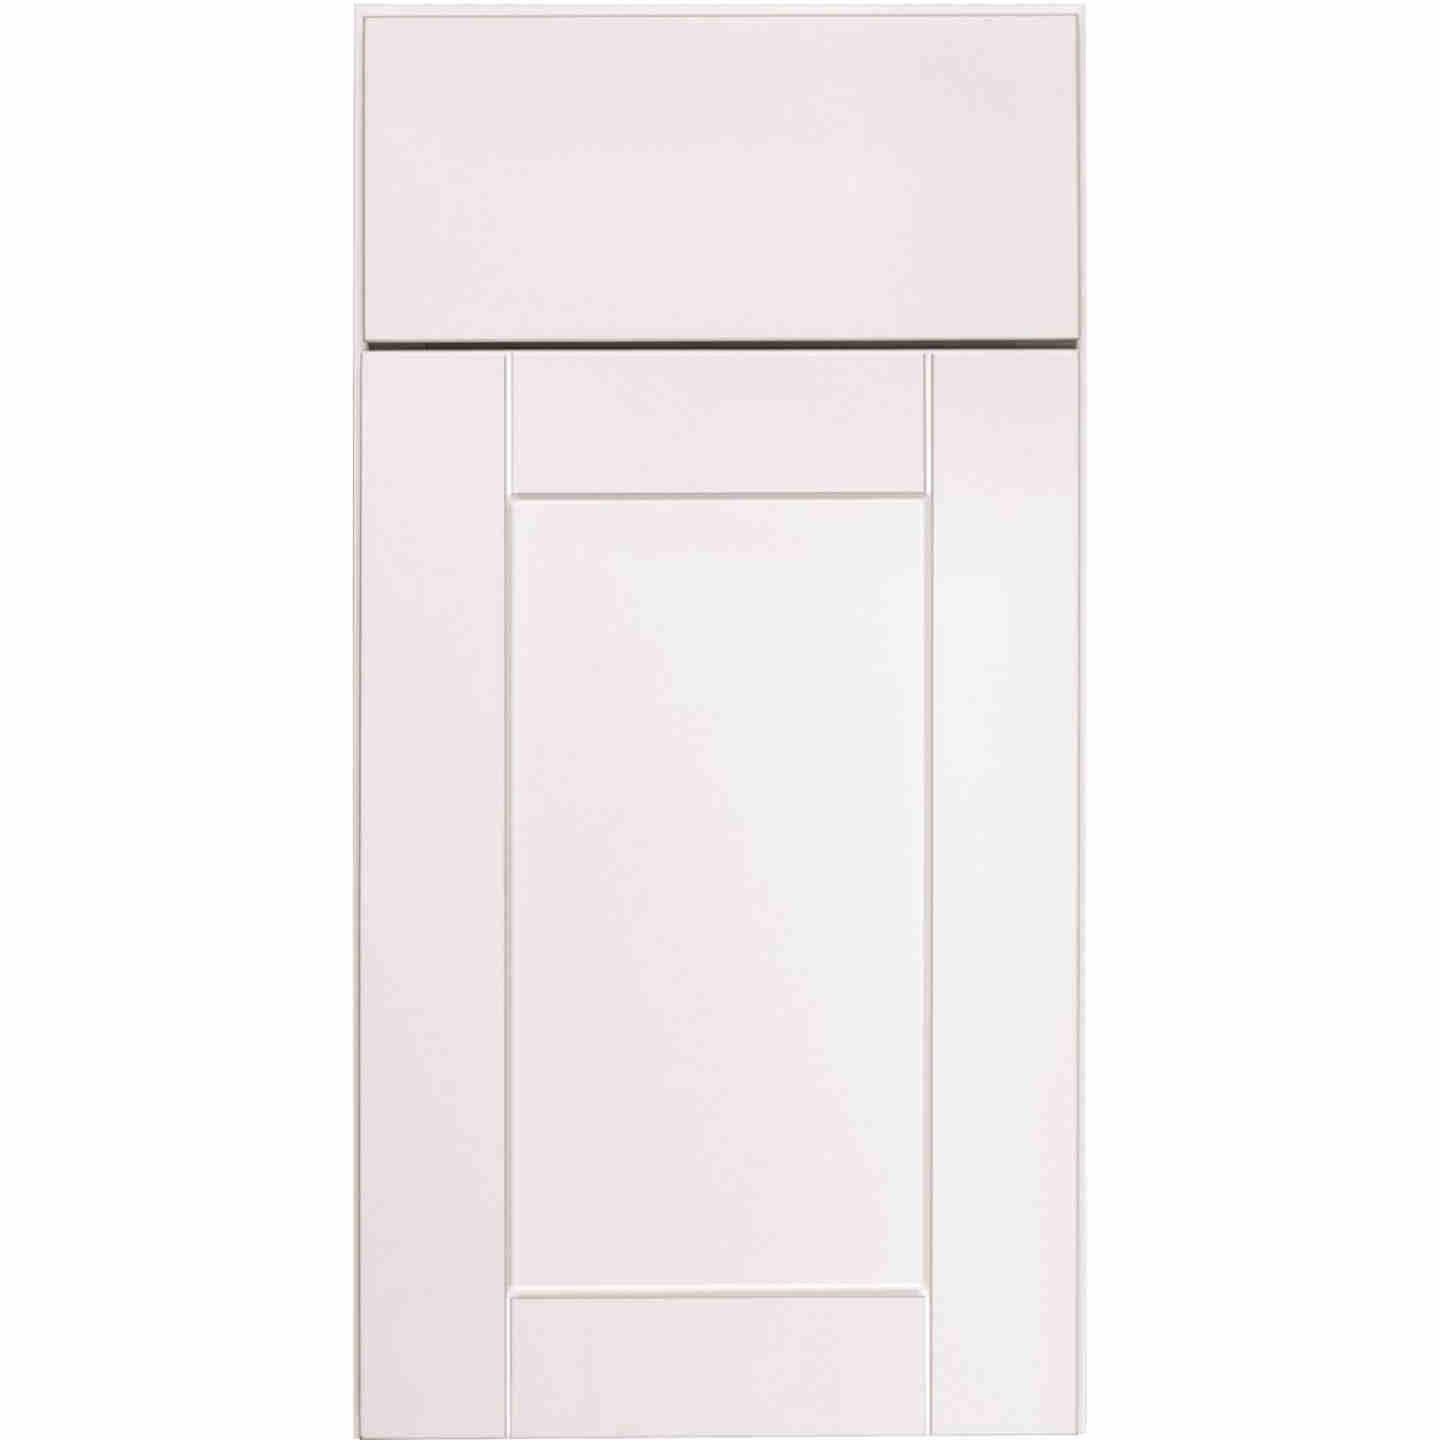 Continental Cabinets Andover Shaker 24 In. W x 34-1/2 In. H x 21 In. D White Vanity Base, 2 Door Image 3